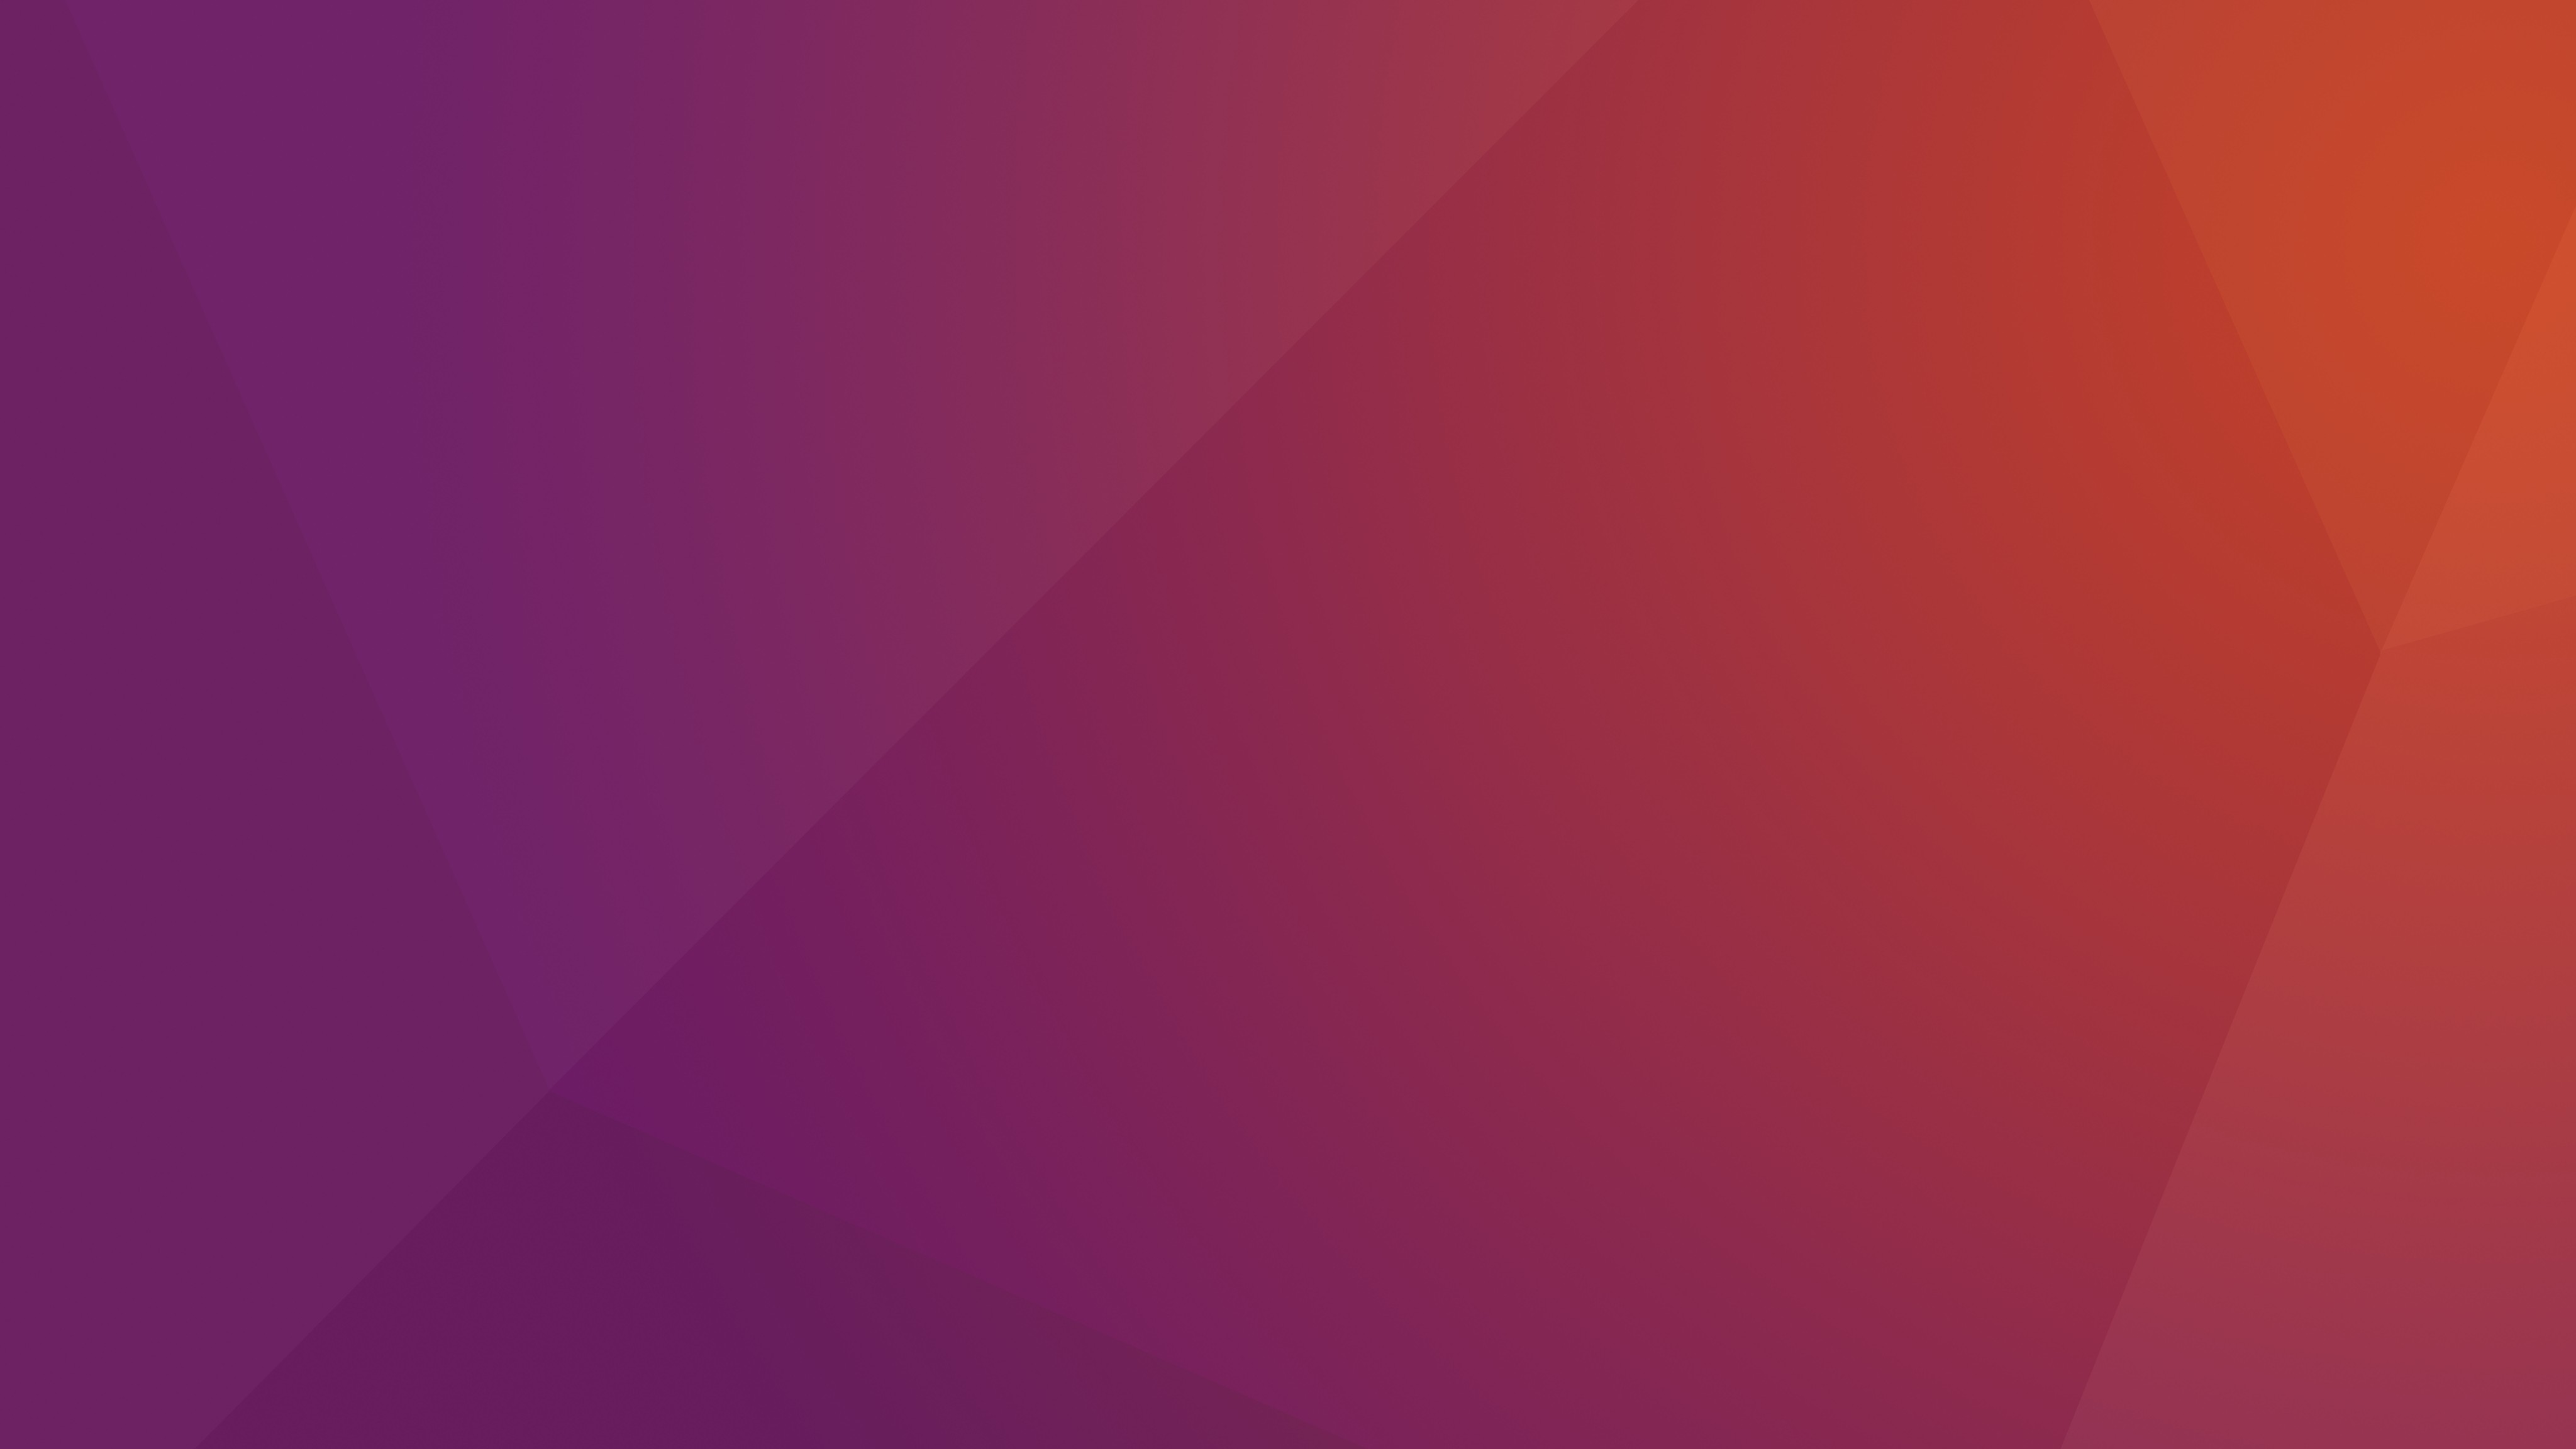 Here Is The Default Set Of Wallpapers For Ubuntu 16.04 LTS